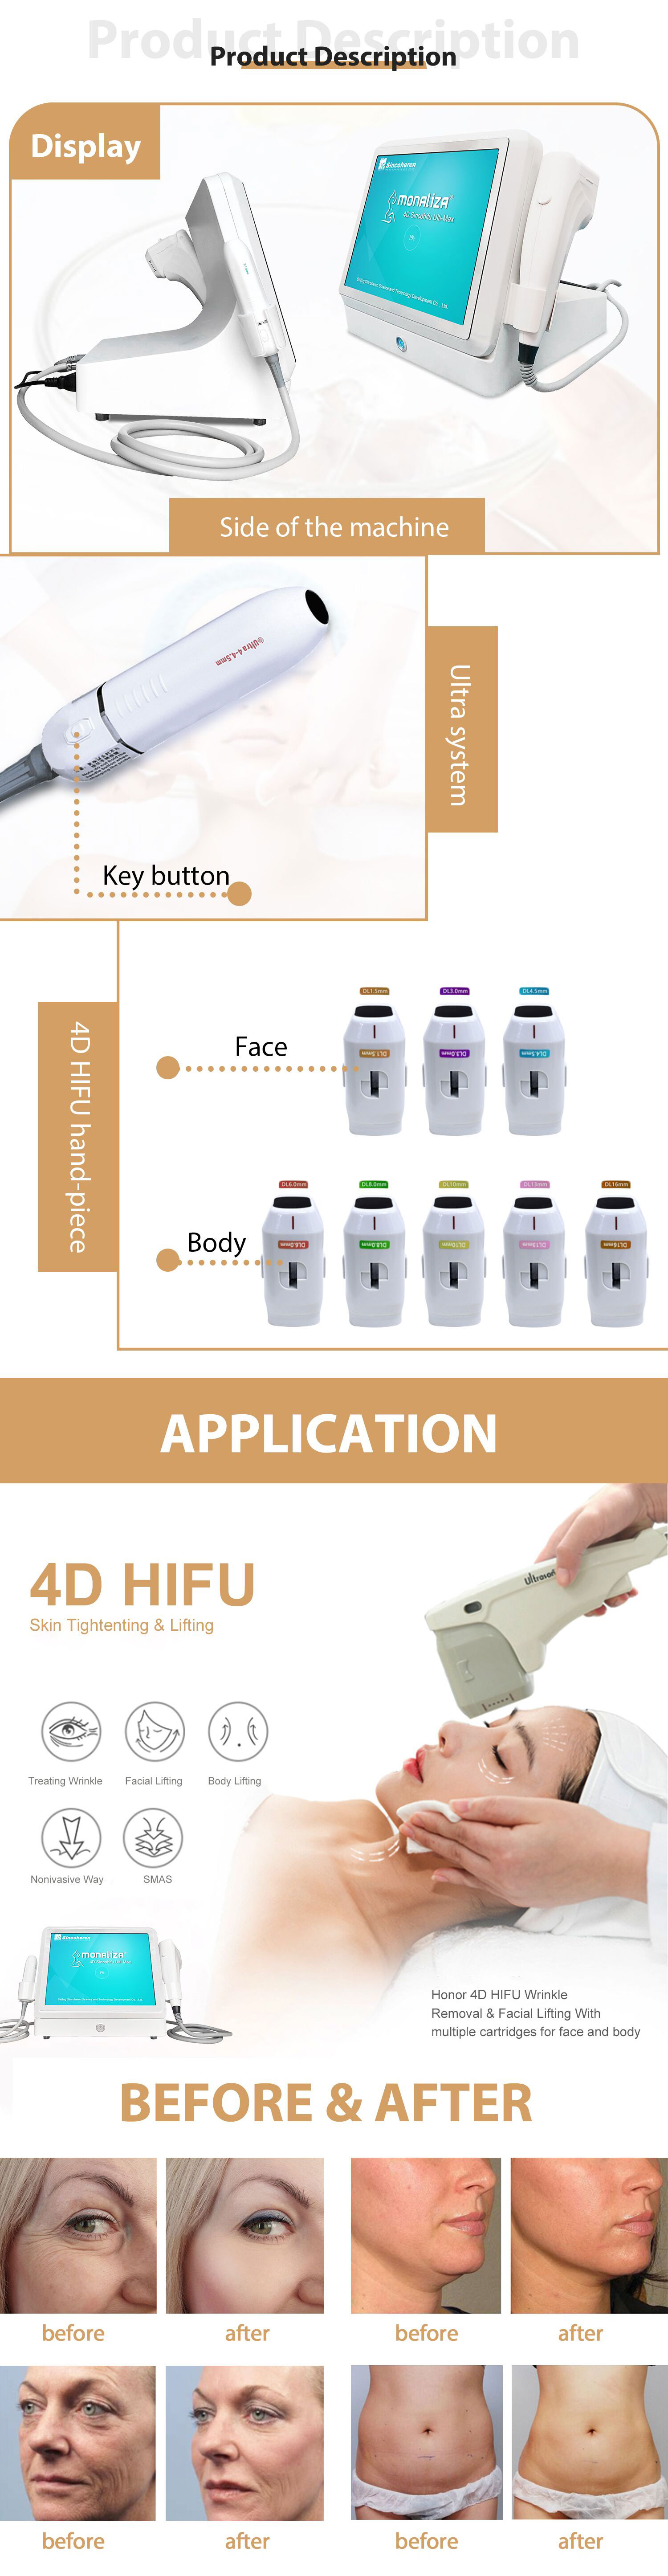 4D Hifu 60000 Shots 12 Lines 6 Cartridges Anti Wrinkle Face Lift Skin Tightening Body Slimming Hifu 3D 4D Hifu beauty machine